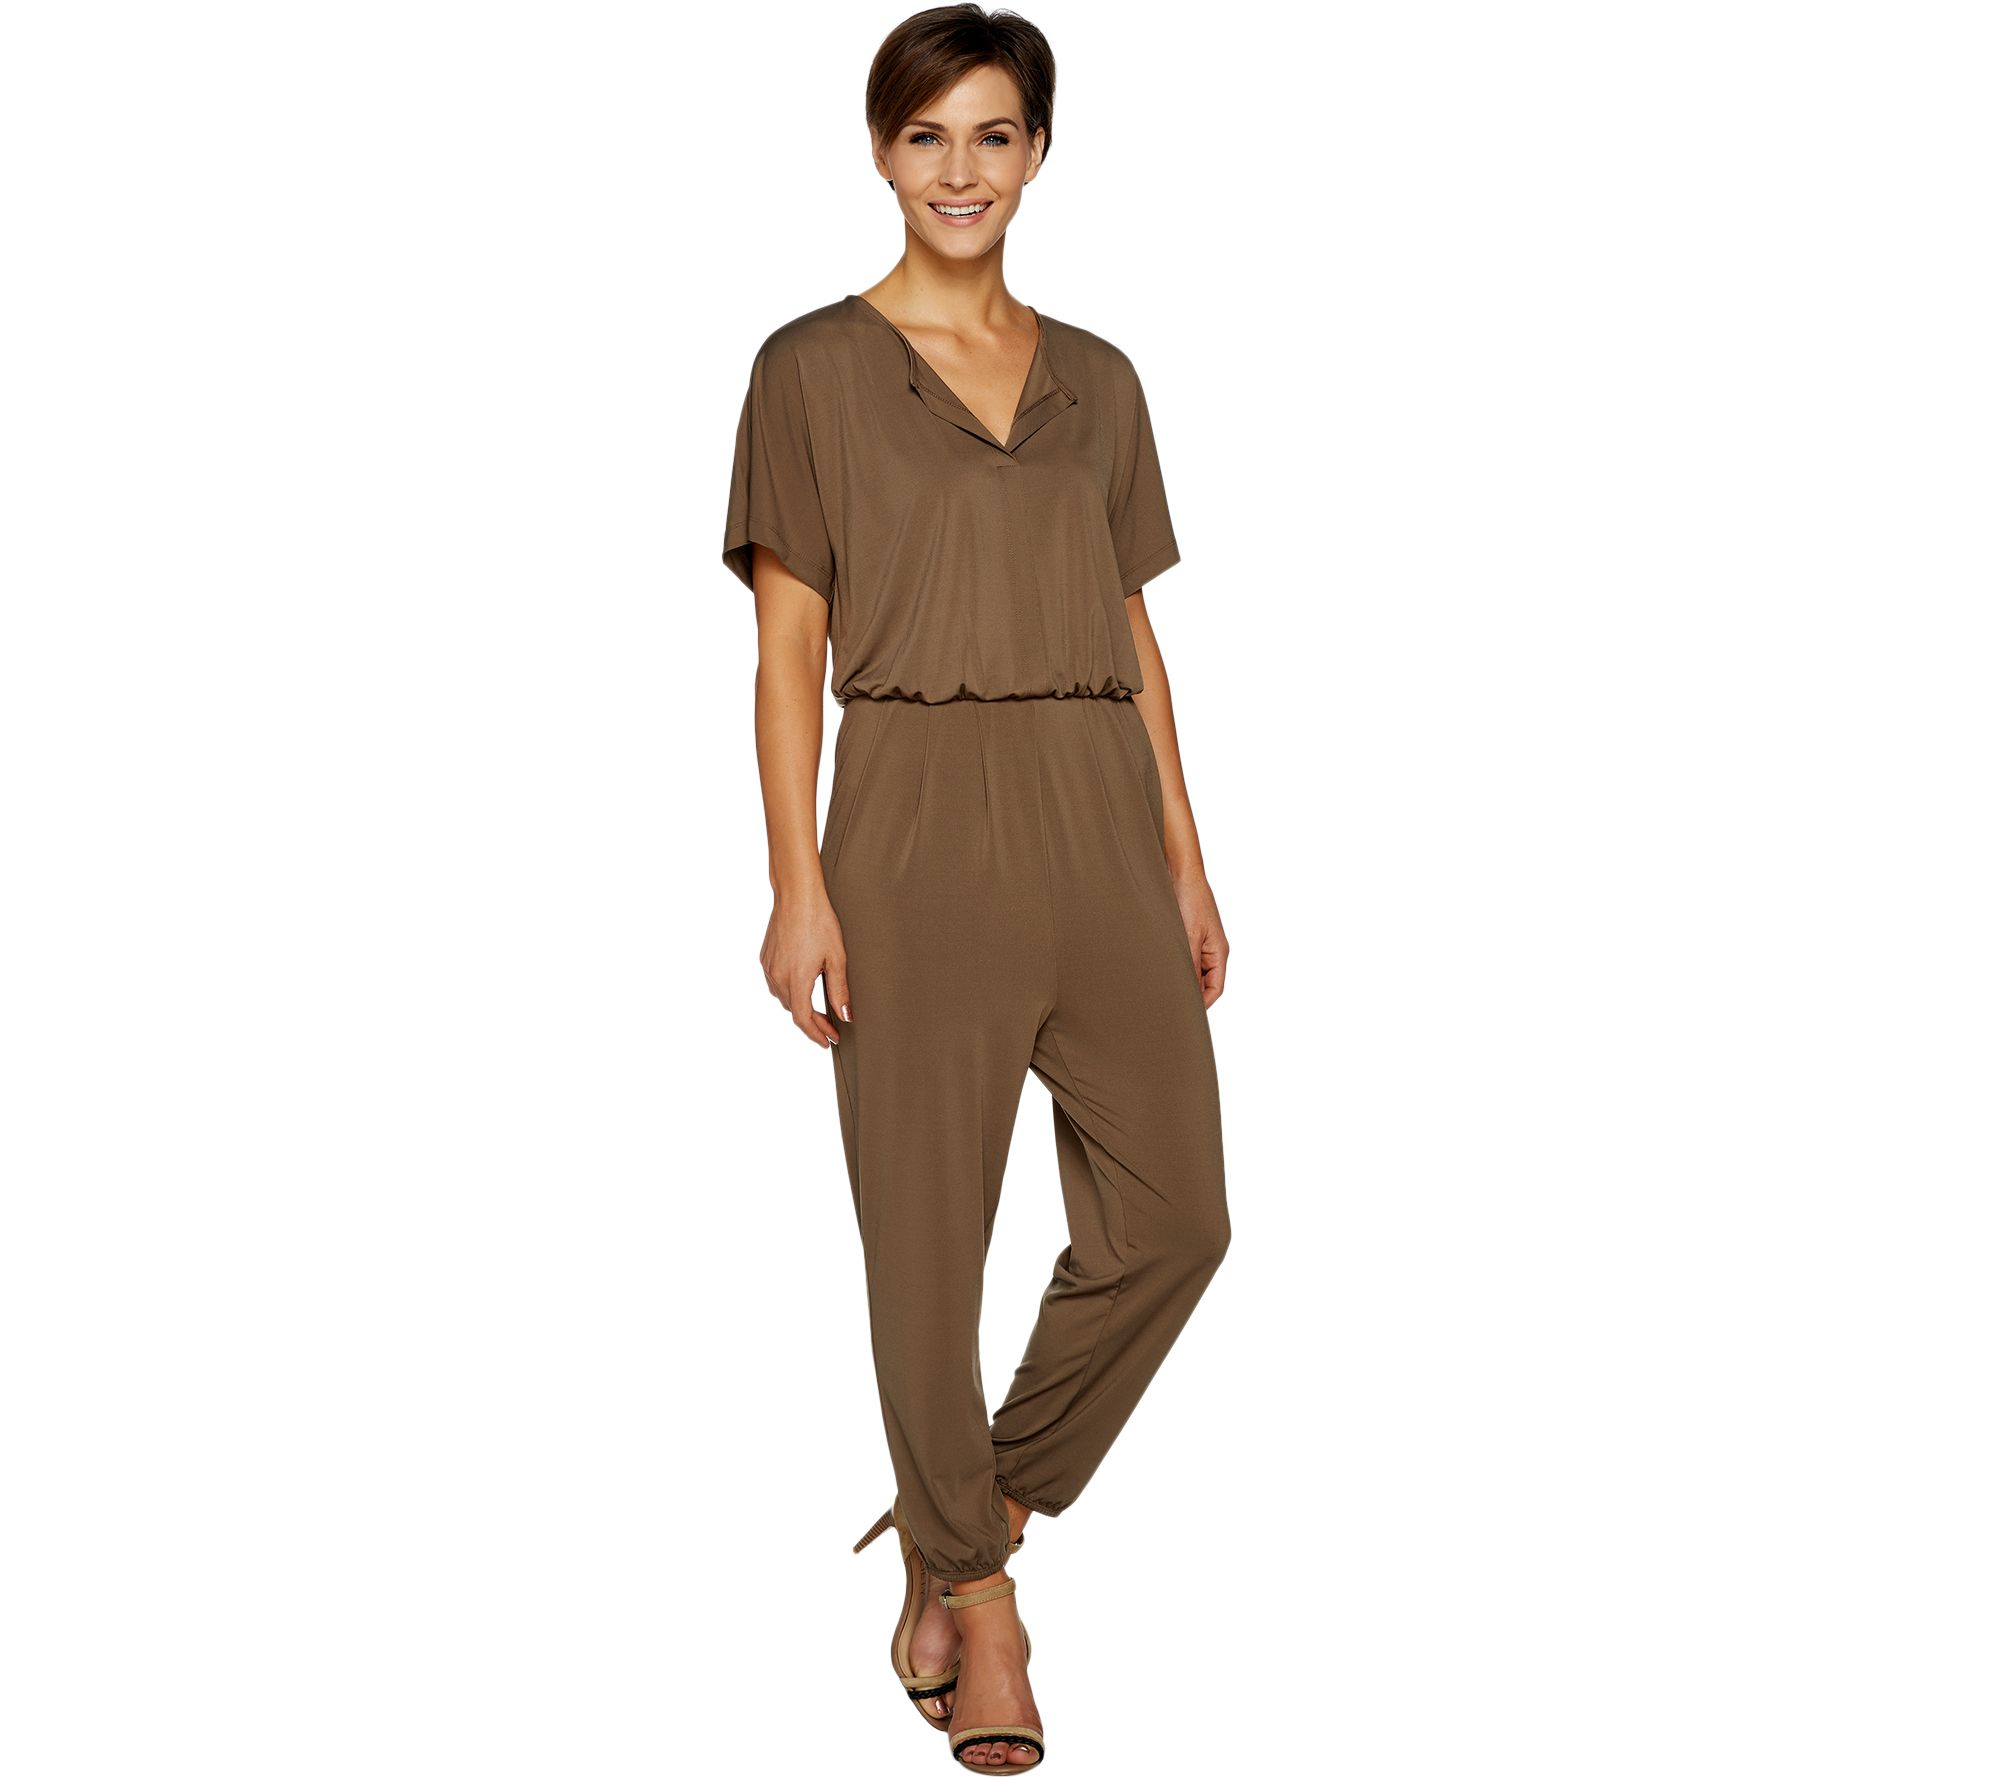 f810b647e42 Lisa Rinna Collection Petite Dolman Sleeve Knit Jumpsuit - Page 1 — QVC.com